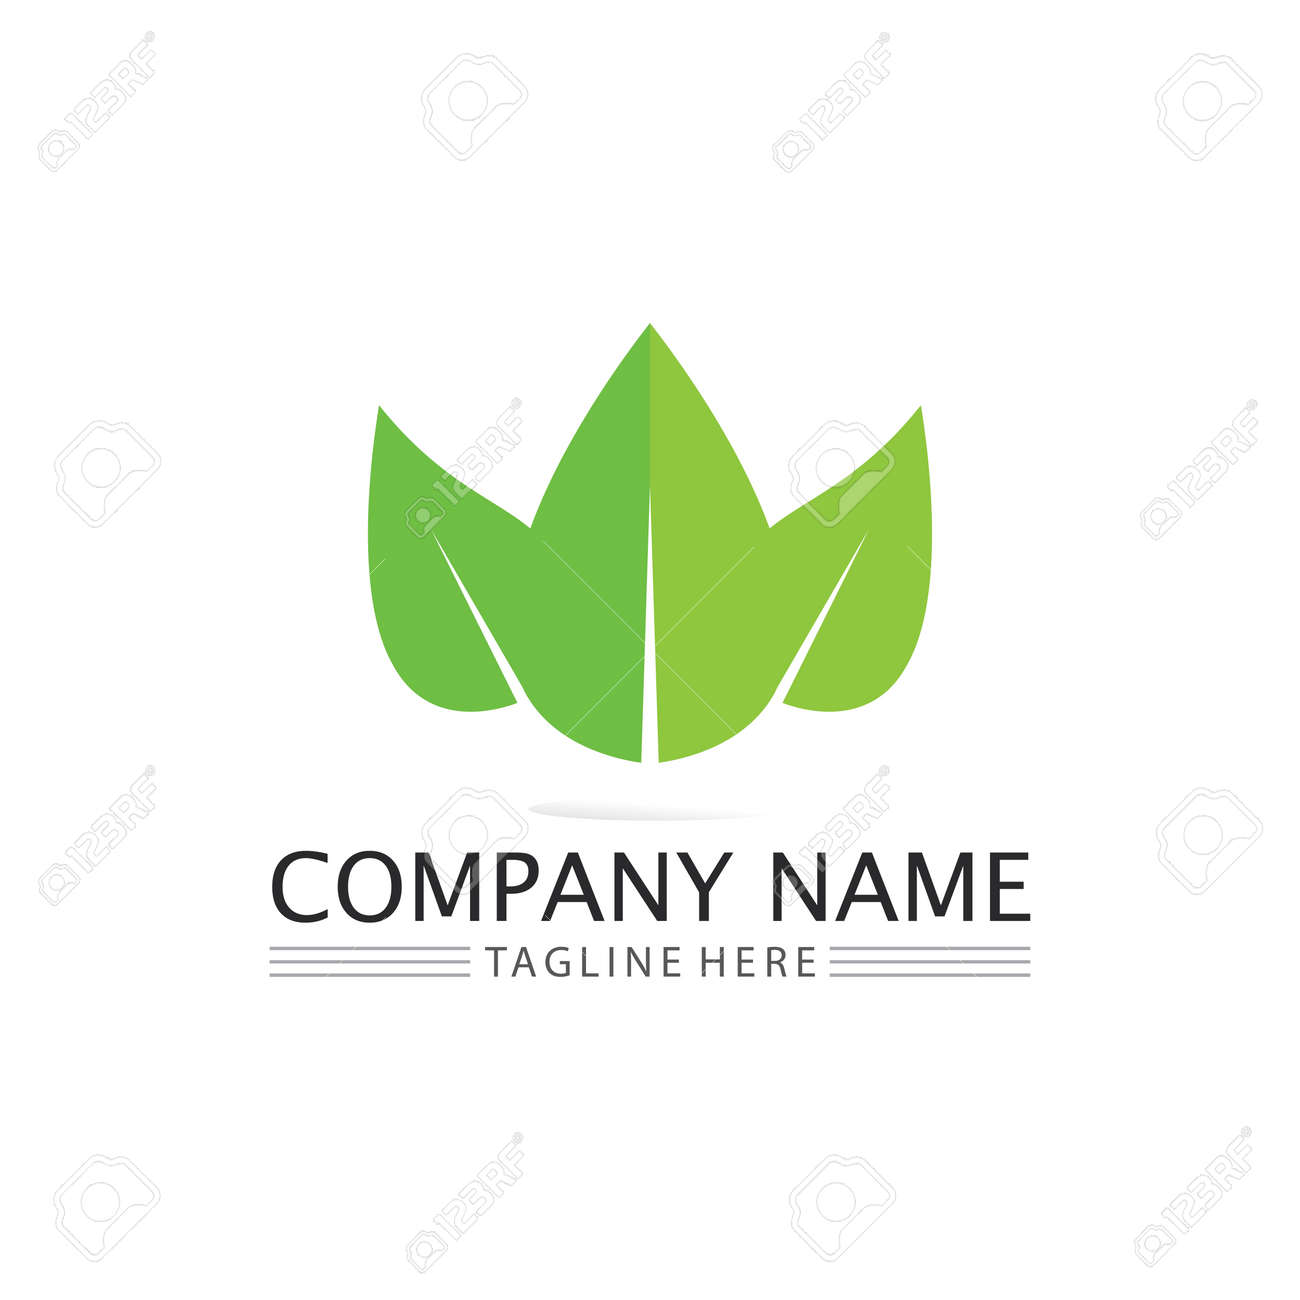 Tree leaf vector and green logo design friendly concept - 169858443